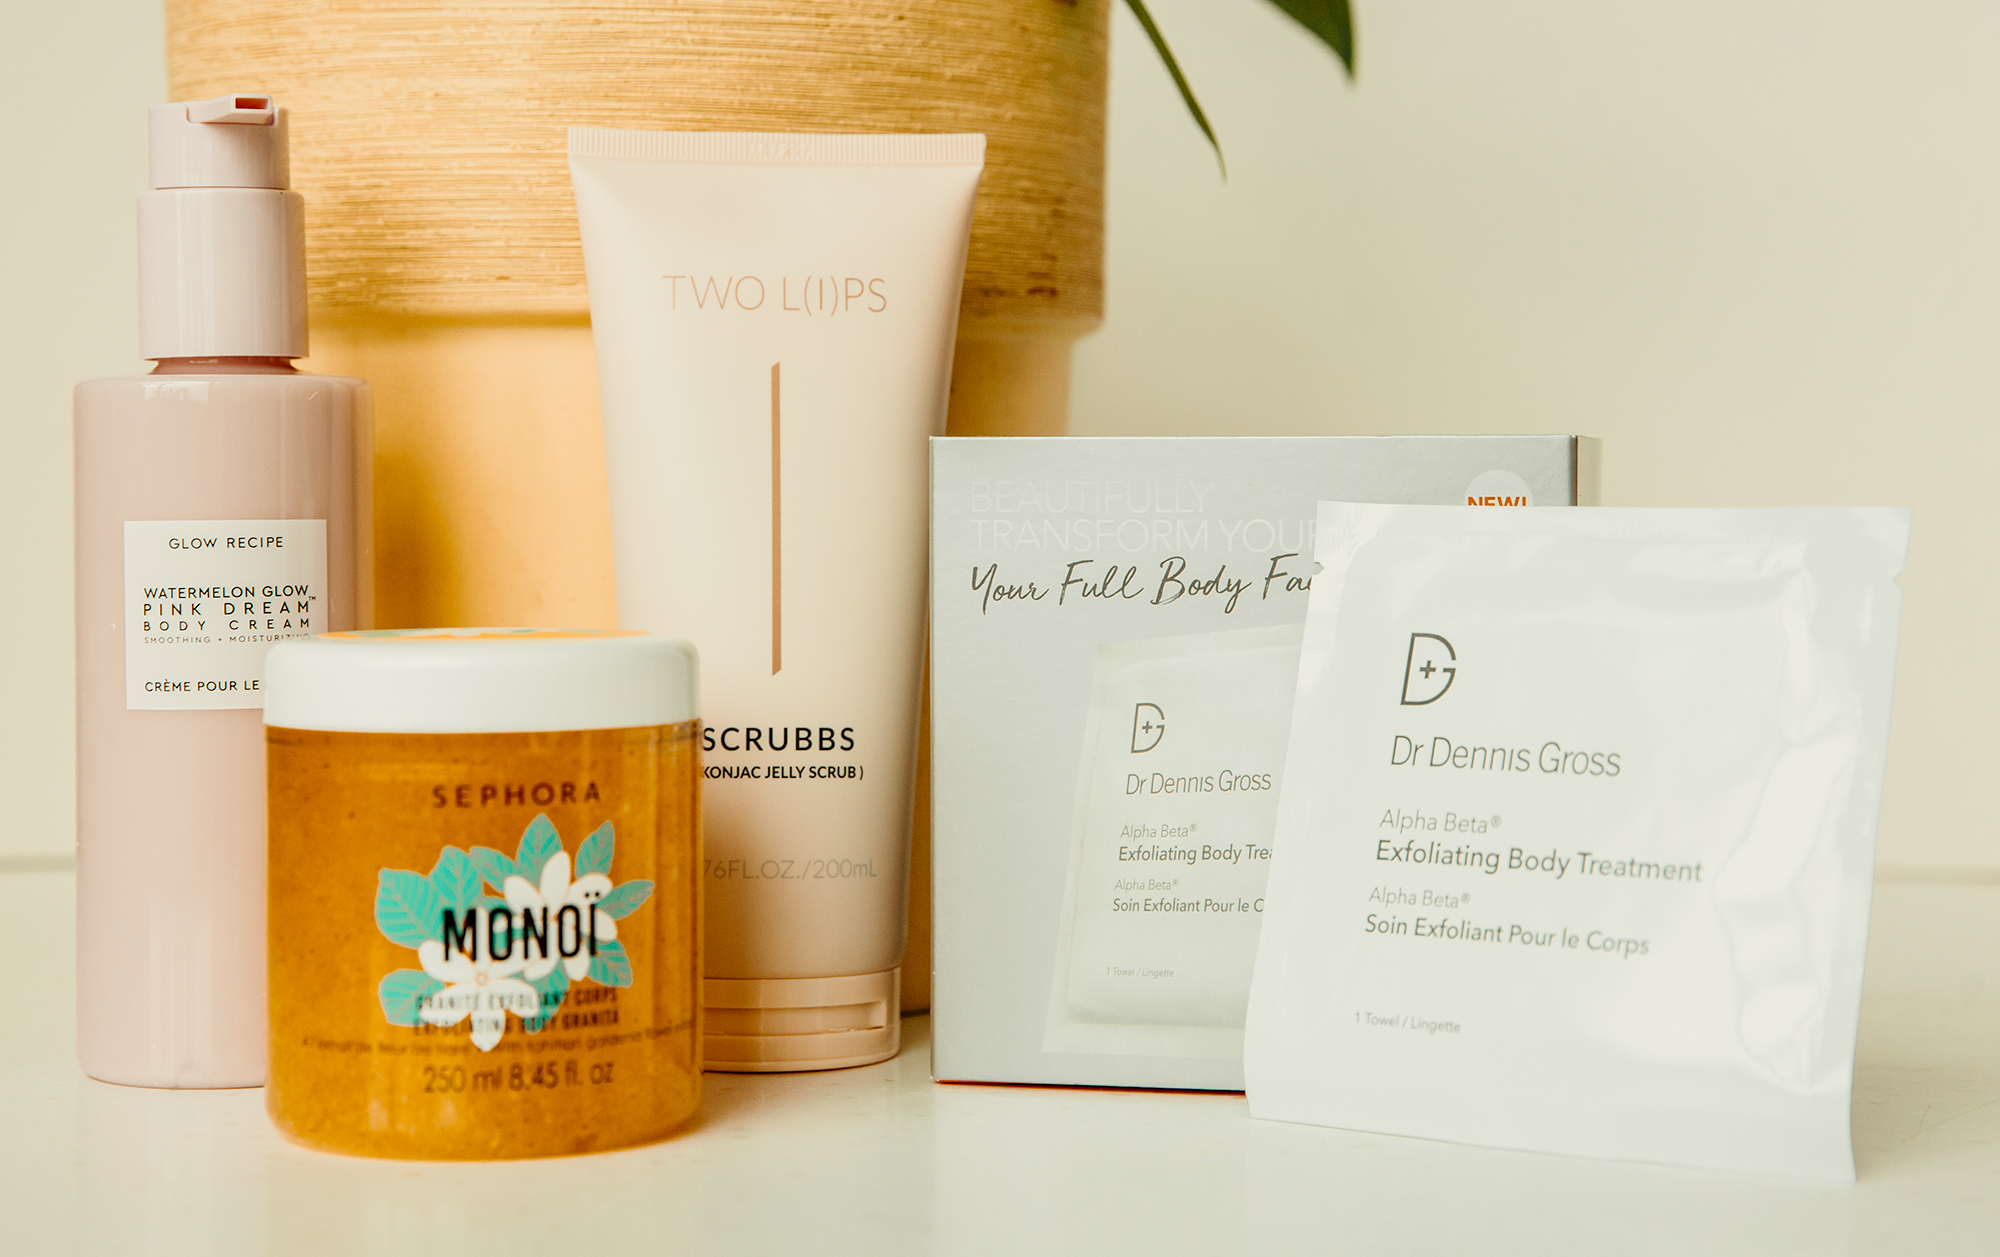 Body Exfoliation Revolution: Expert Advice On How To Do It Right (Ft. Dr Dennis Gross)